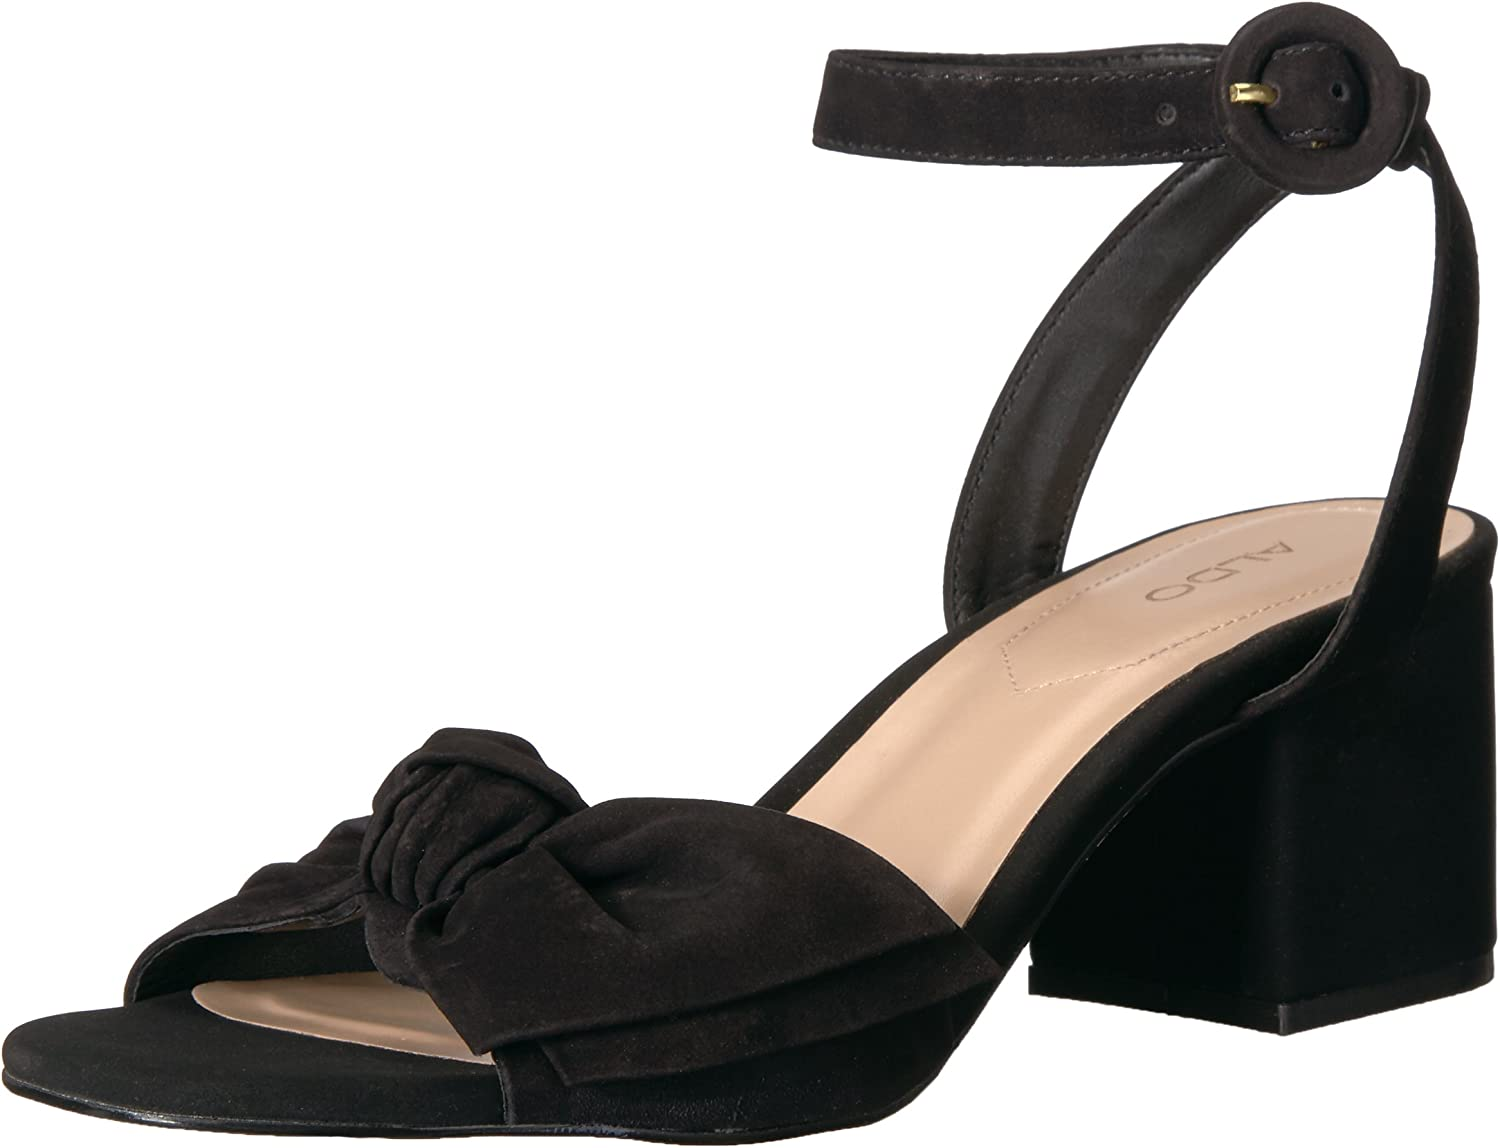 Aldo Women's Beautie Dress Sandal